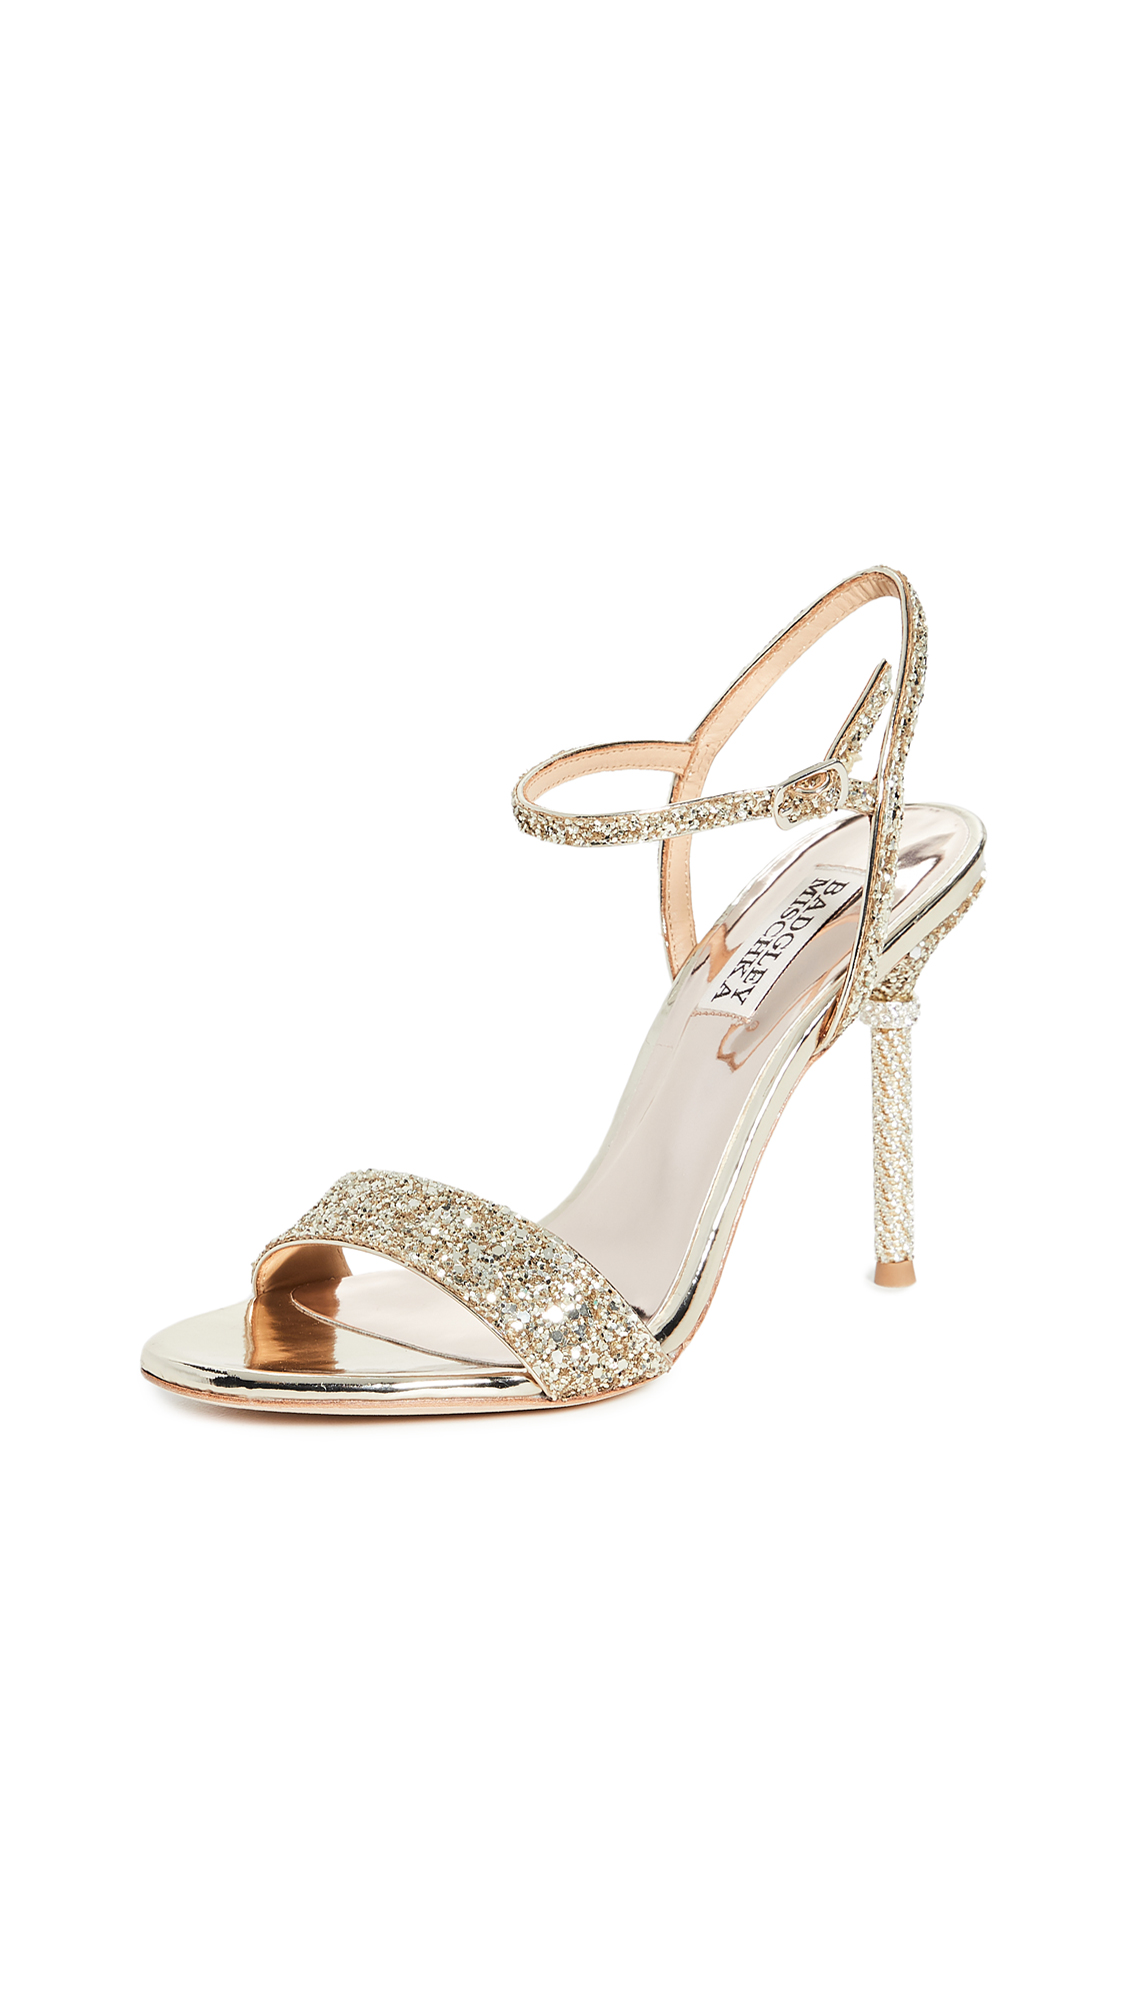 Photo of Badgley Mischka Olympia Strappy Sandals - shop Badgley Mischka Sandals, Flat online